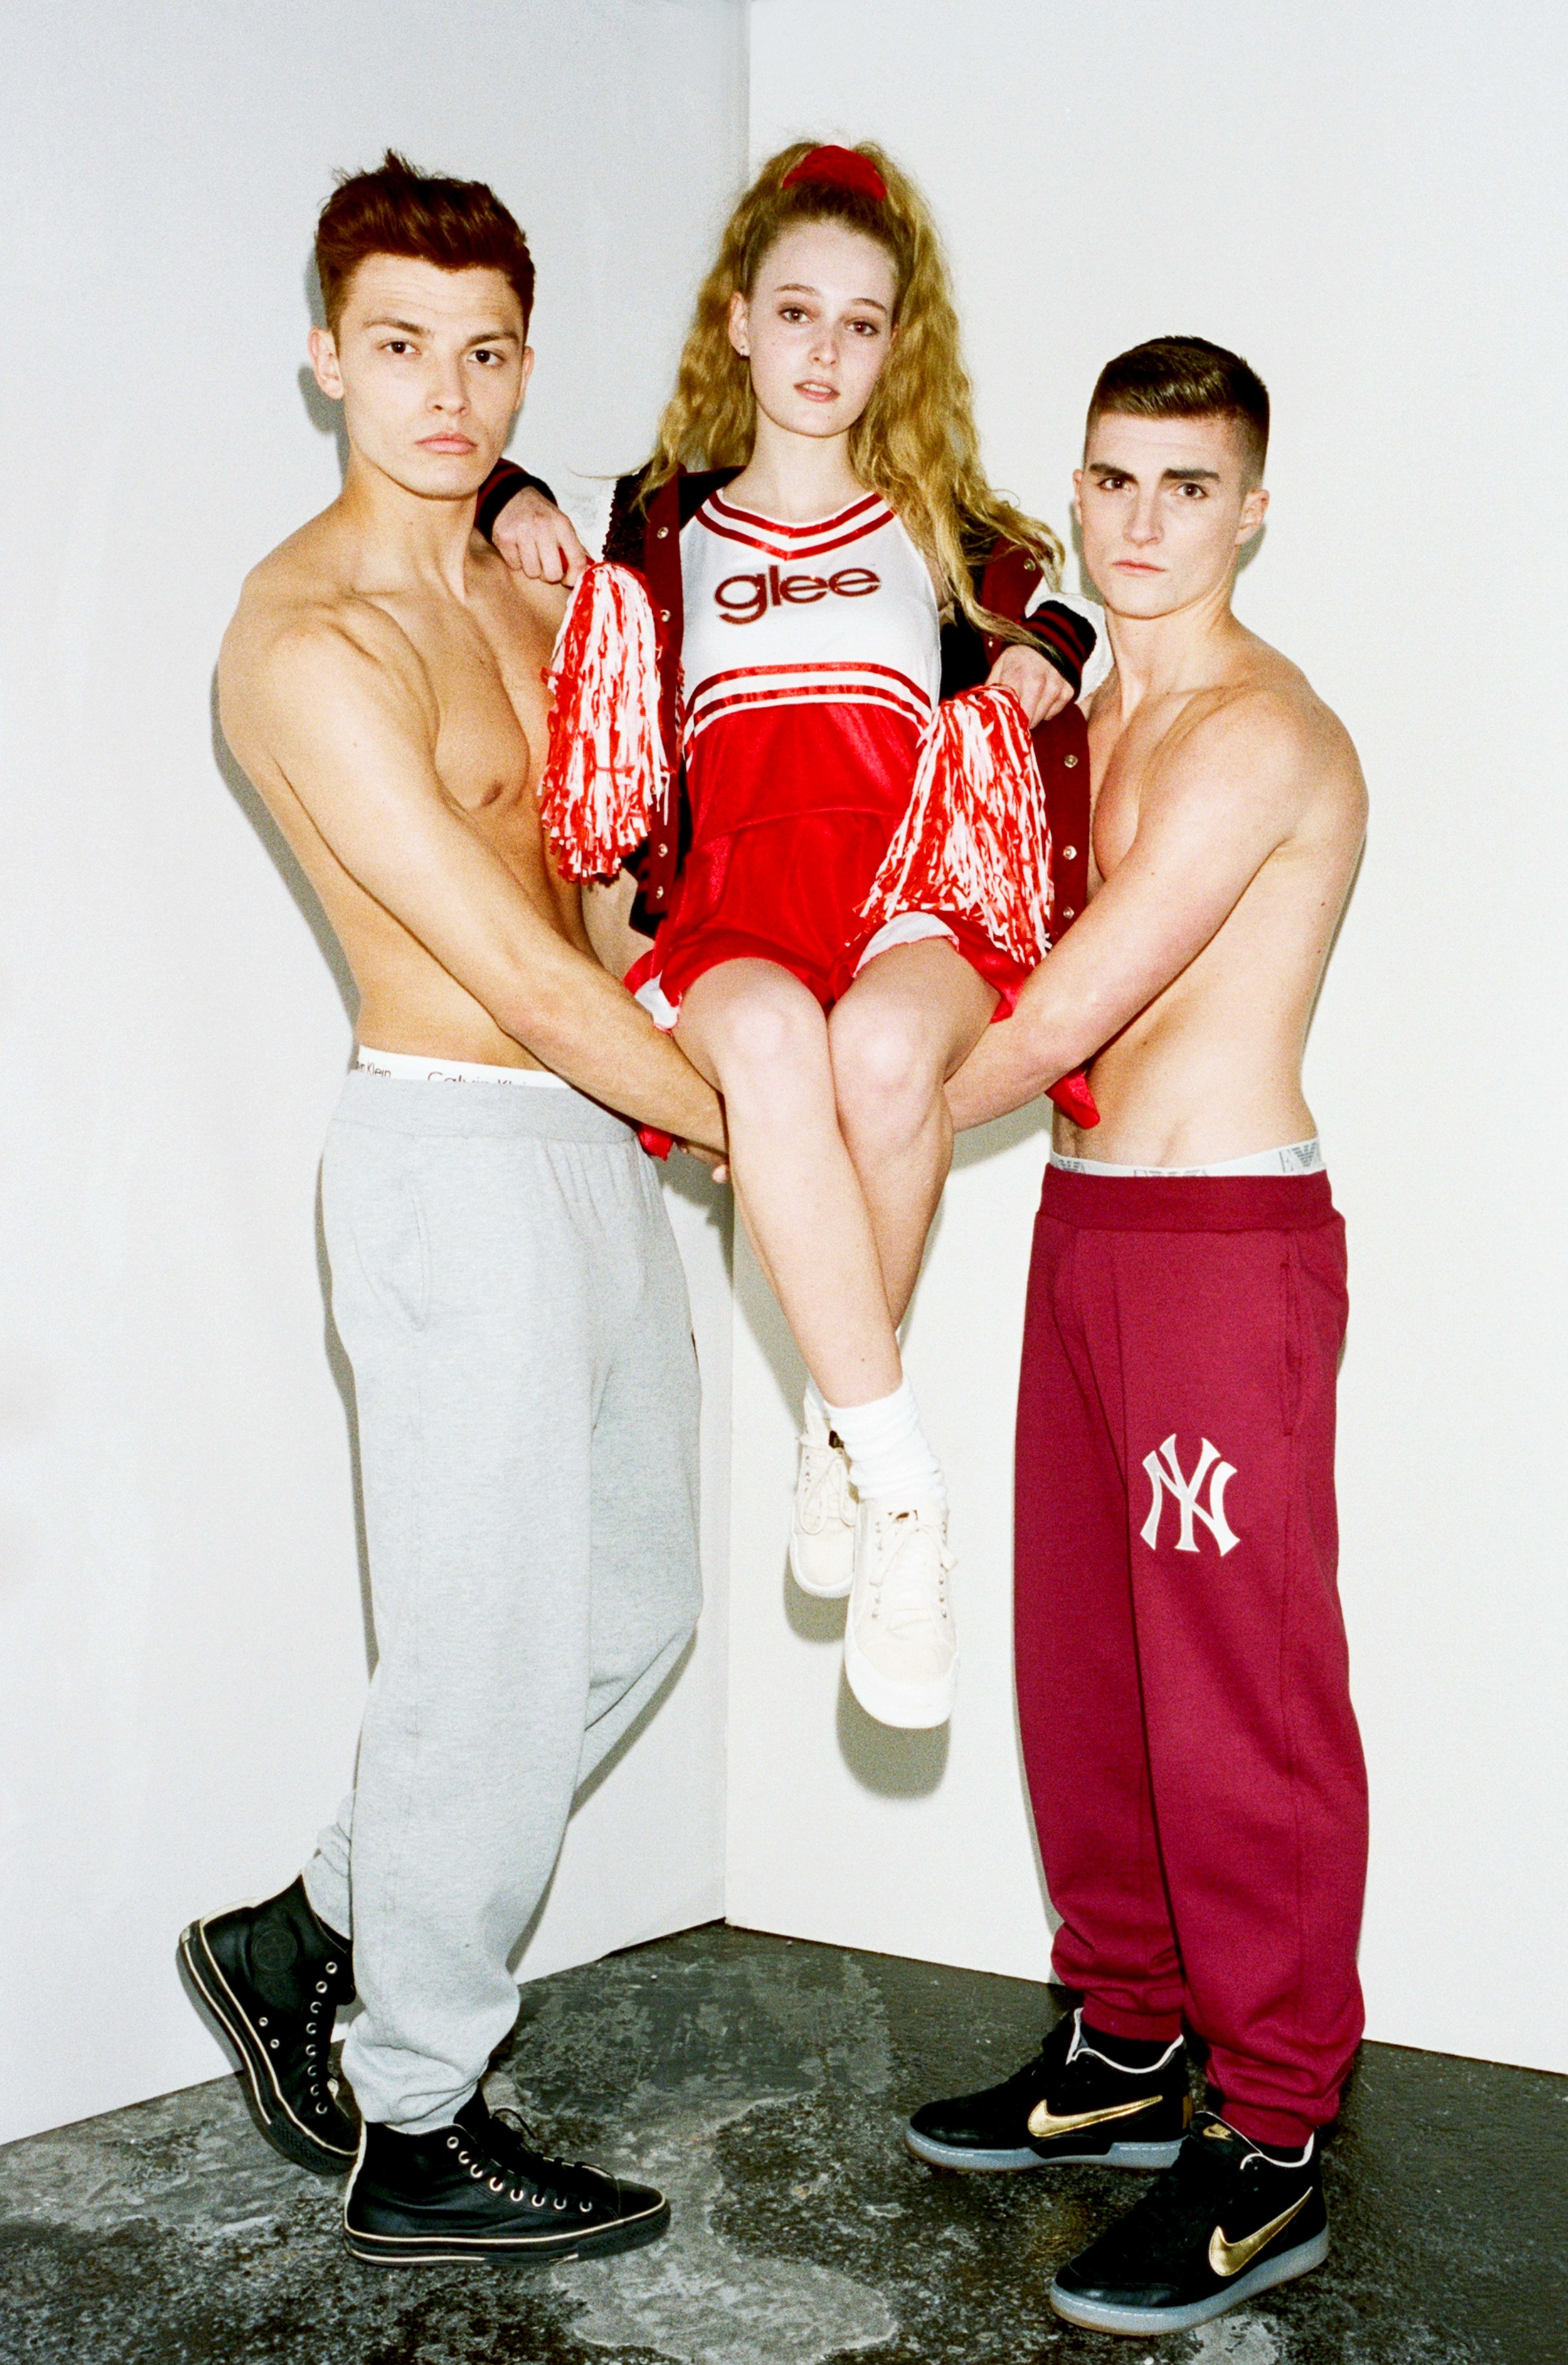 Nick wears Grey Jogging Bottoms by Majestic, Trainers by Converse, Anna wears Cheerleader Costume - Stylist's Own, Sequin Varsity Jacket by Ashish, Trainers from Beyond Retro, Tyler wears Red Jogging Bottoms by Majestic, Trainers by Nike